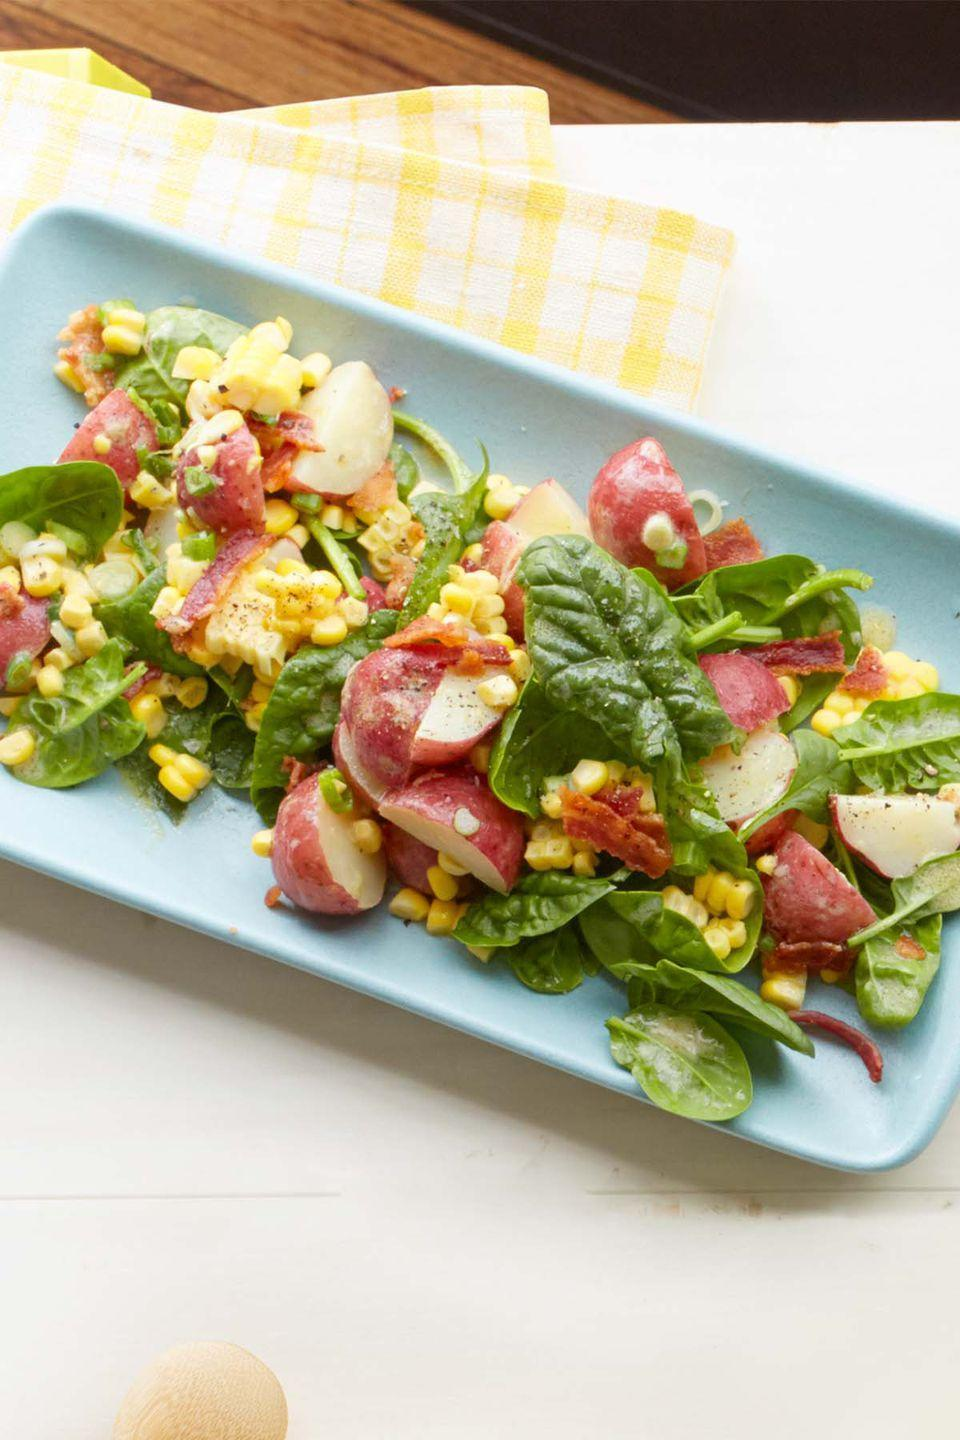 "<p>This simple summer salad is fresh and filling - a.k.a. all you could ever want for a hot day.</p><p><em><a href=""https://www.womansday.com/food-recipes/food-drinks/recipes/a54827/spinach-potato-and-corn-salad-recipe/"" rel=""nofollow noopener"" target=""_blank"" data-ylk=""slk:Get the recipe for Spinach, Potato, and Corn Salad."" class=""link rapid-noclick-resp"">Get the recipe for Spinach, Potato, and Corn Salad.</a></em> </p>"